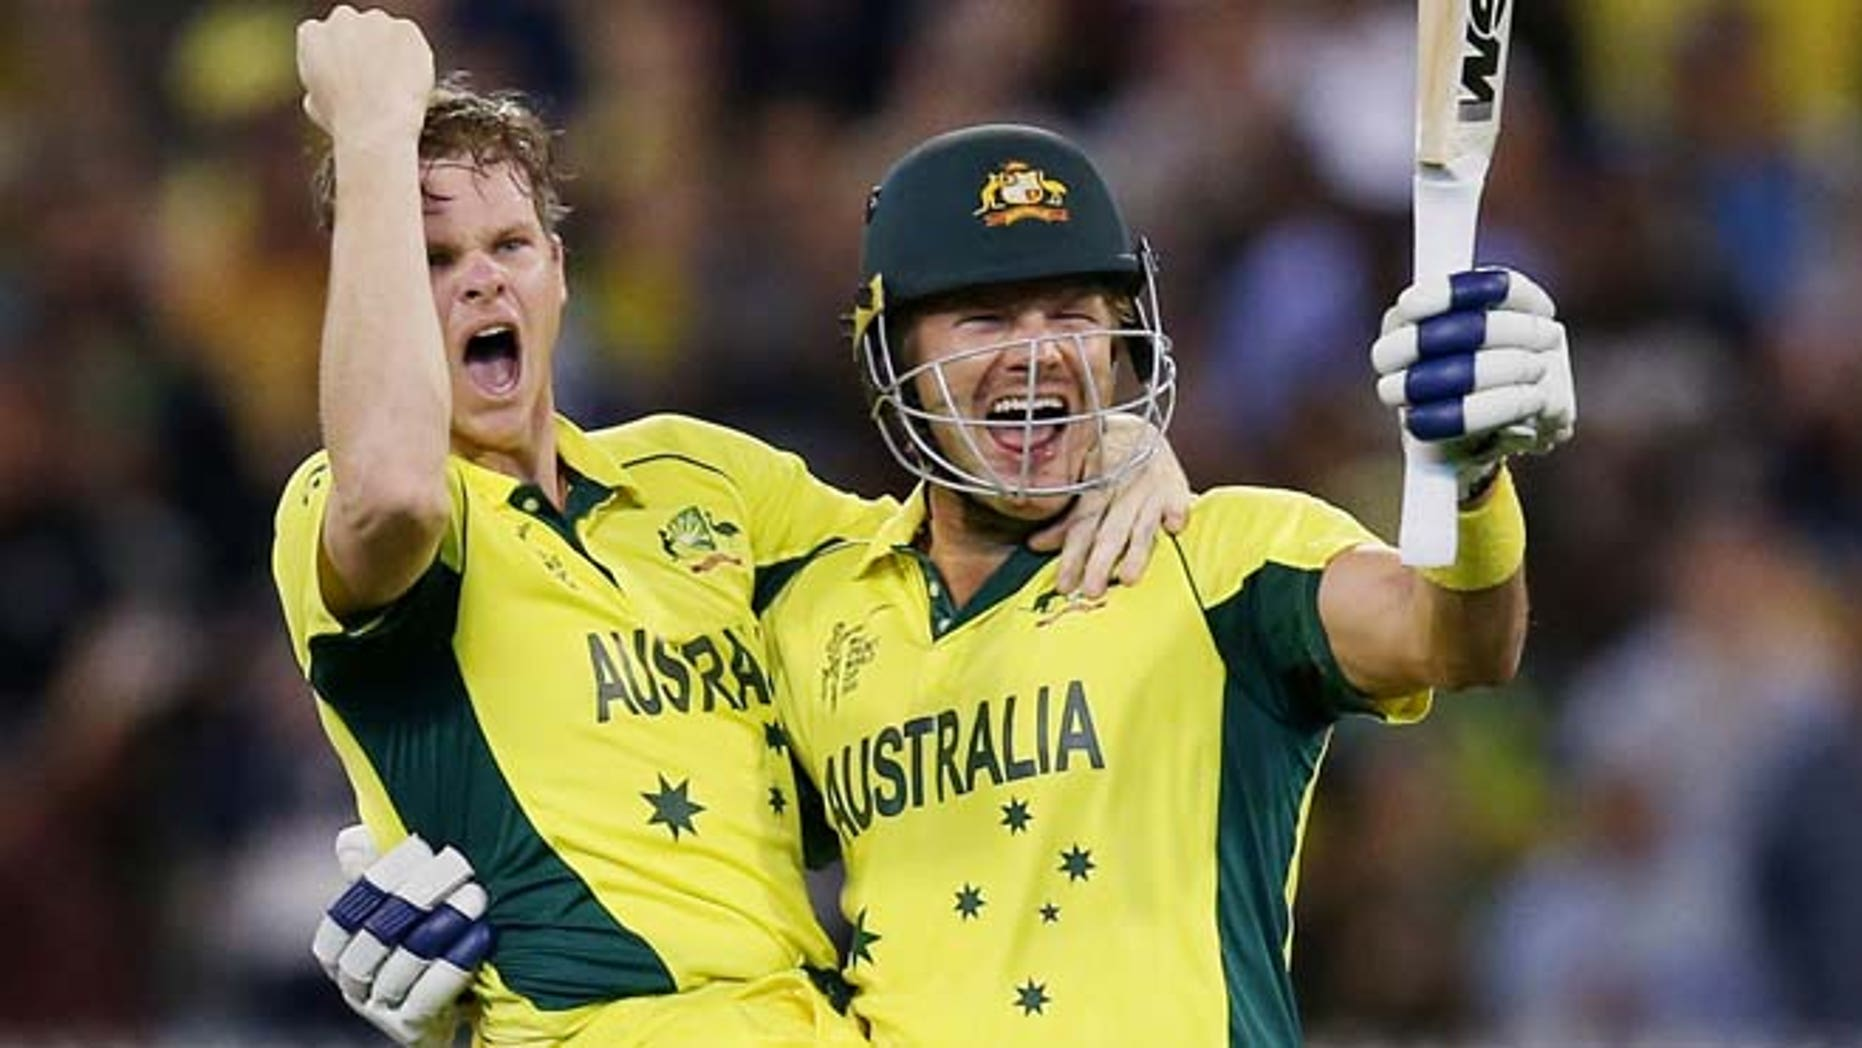 March 29, 2015: Australia's Steve Smith, left, and teammate Shane Watson celebrate after defeating New Zealand by seven wickets to win the Cricket World Cup final in Melbourne, Australia.